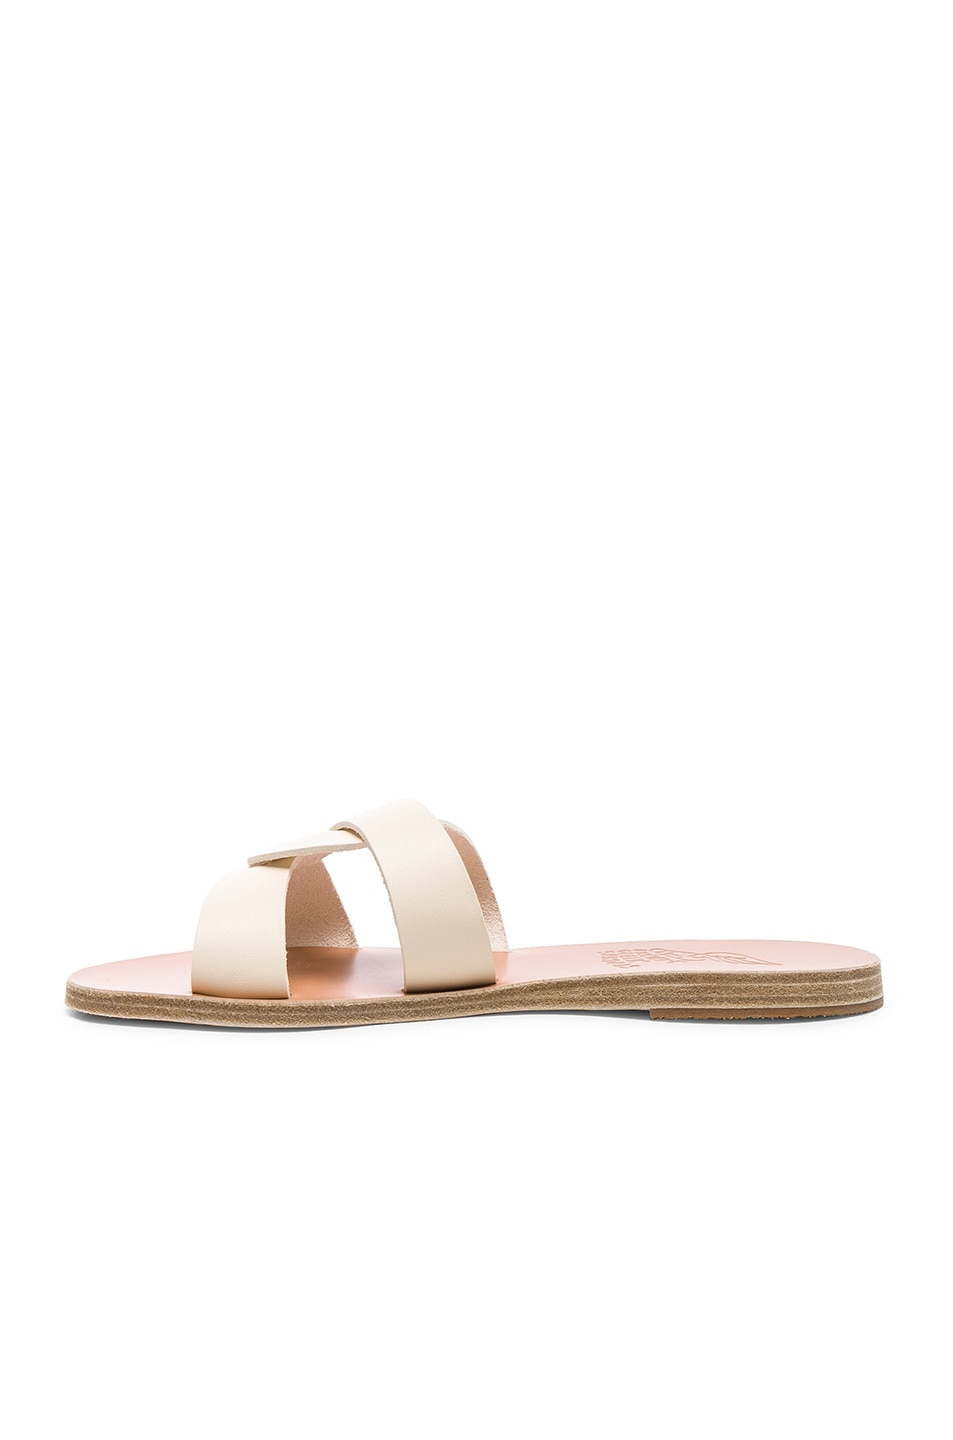 Image 5 of Ancient Greek Sandals Leather Desmos Sandals in Off White